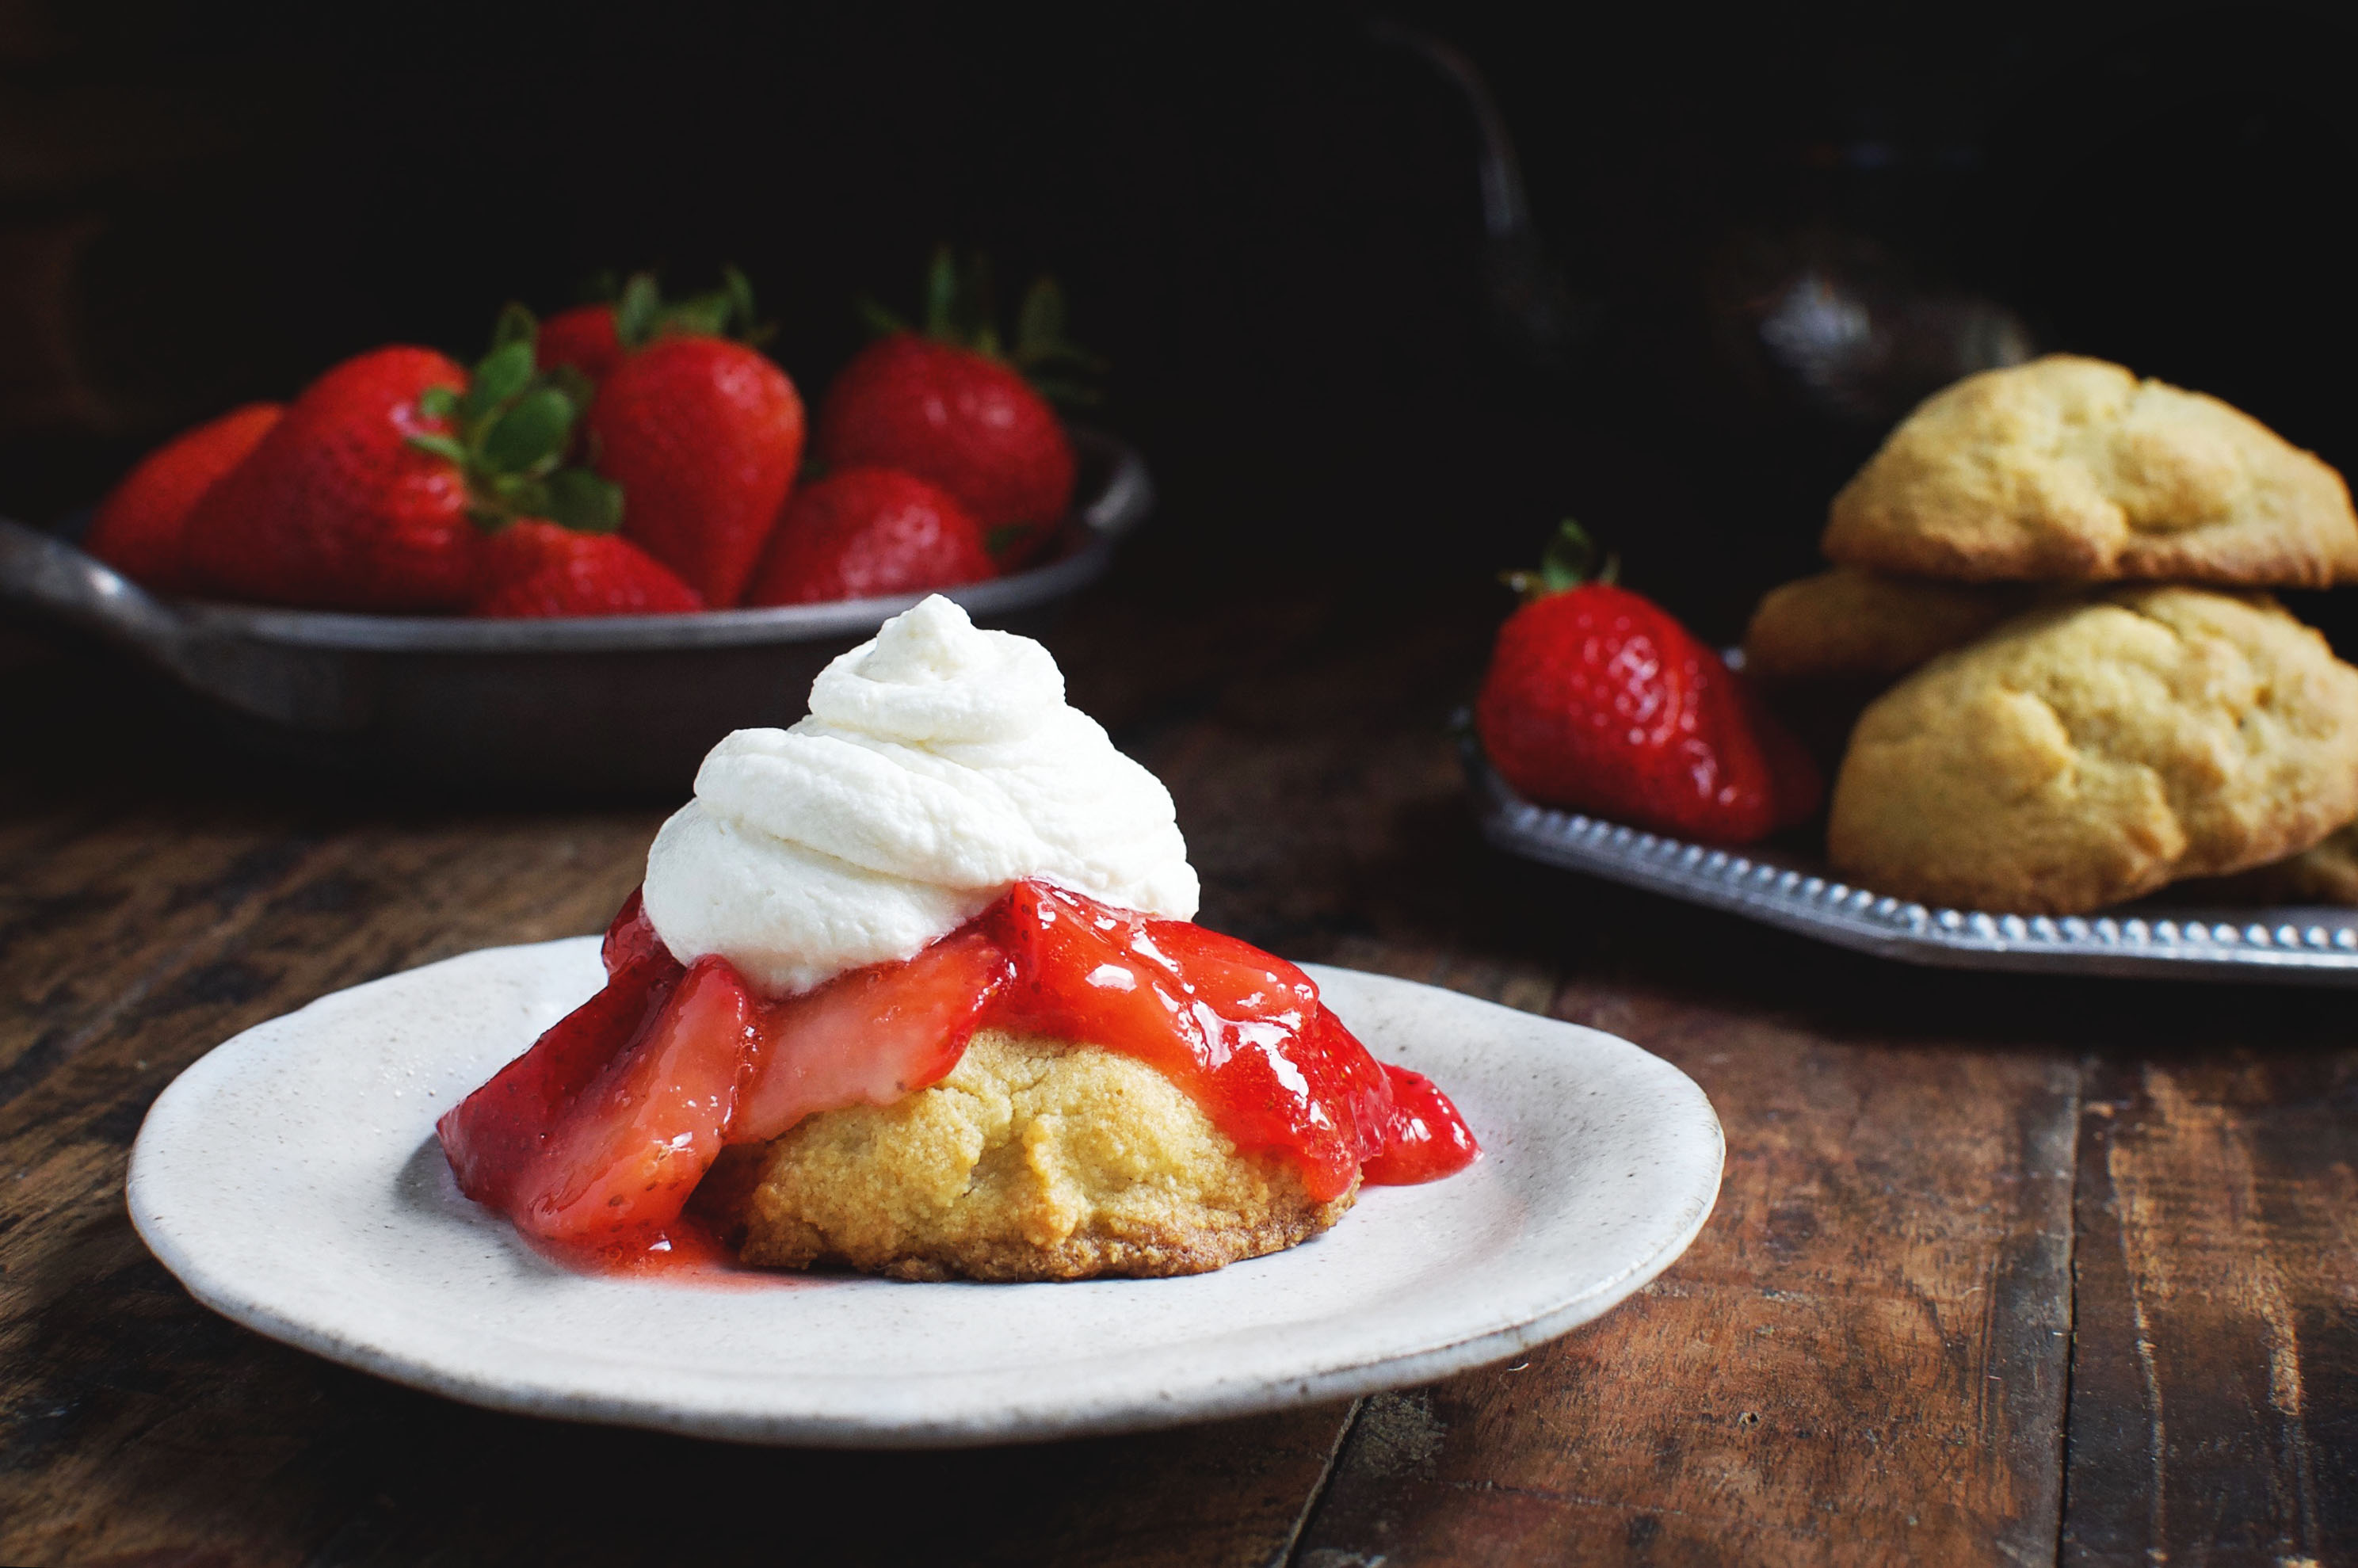 Low-Carb Strawberry Lemon Shortcake